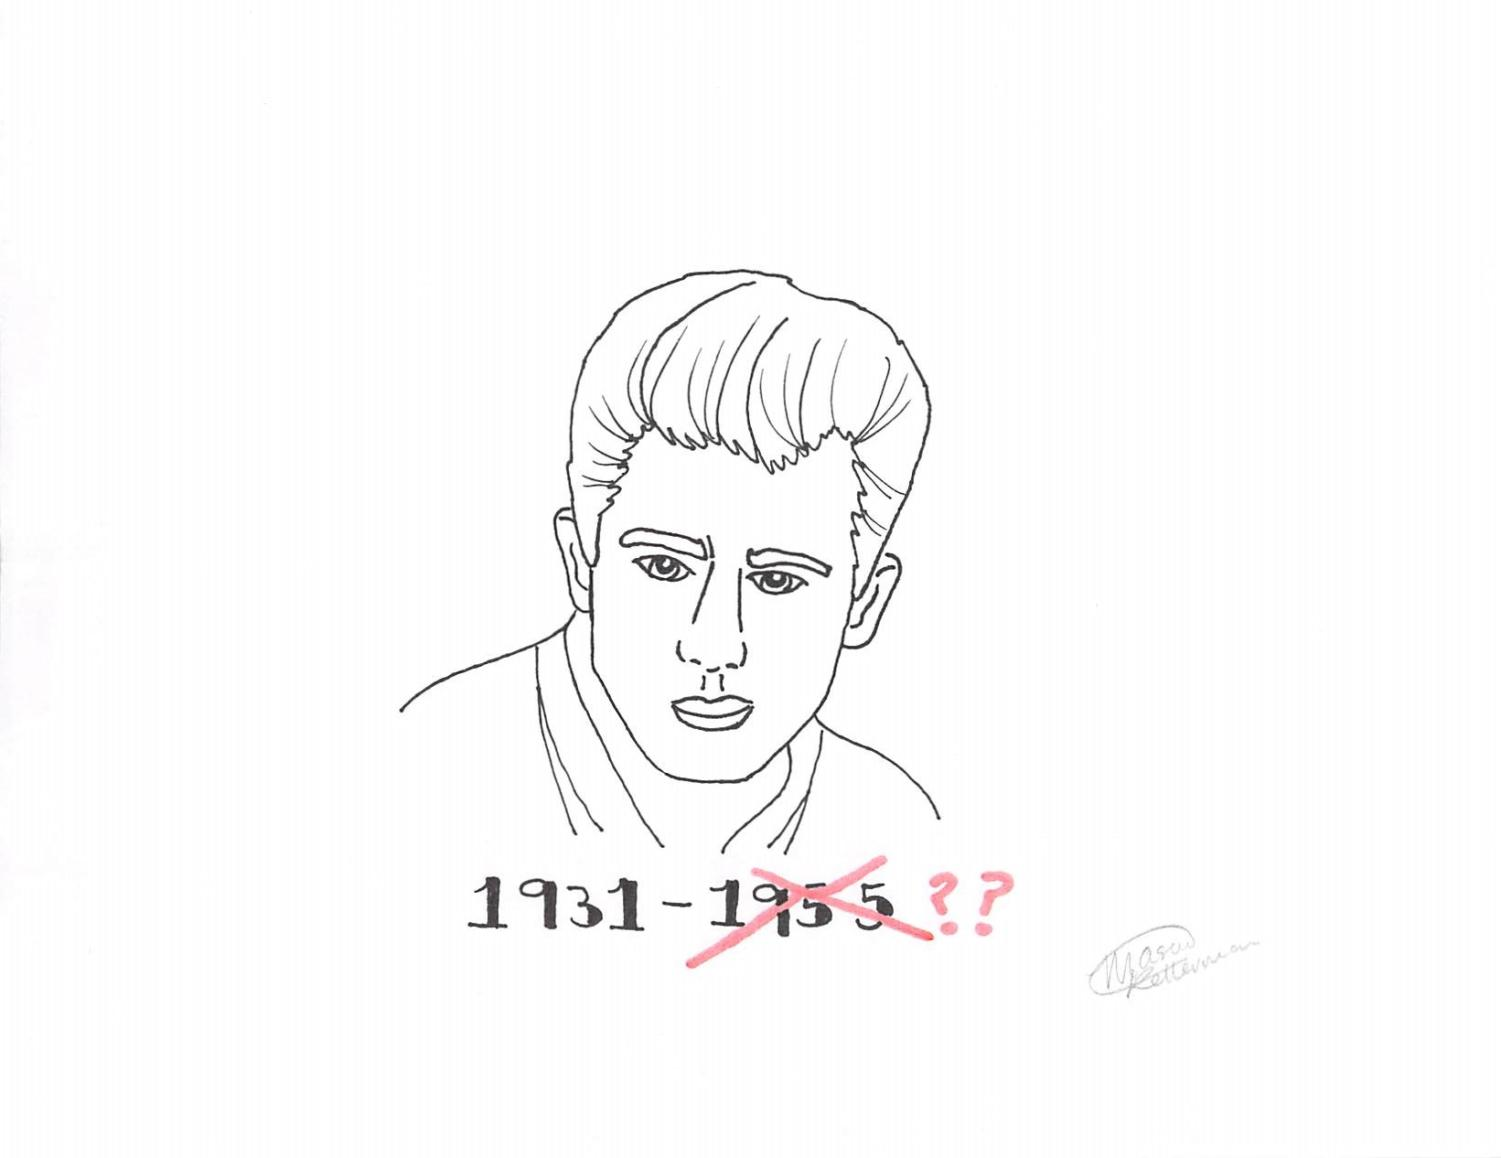 James Dean, actor, appears above the dates of his birth and death year. Dean will star in his fourth feature film 65 years after his death via cutting edge computer-generated imagery (CGI.)